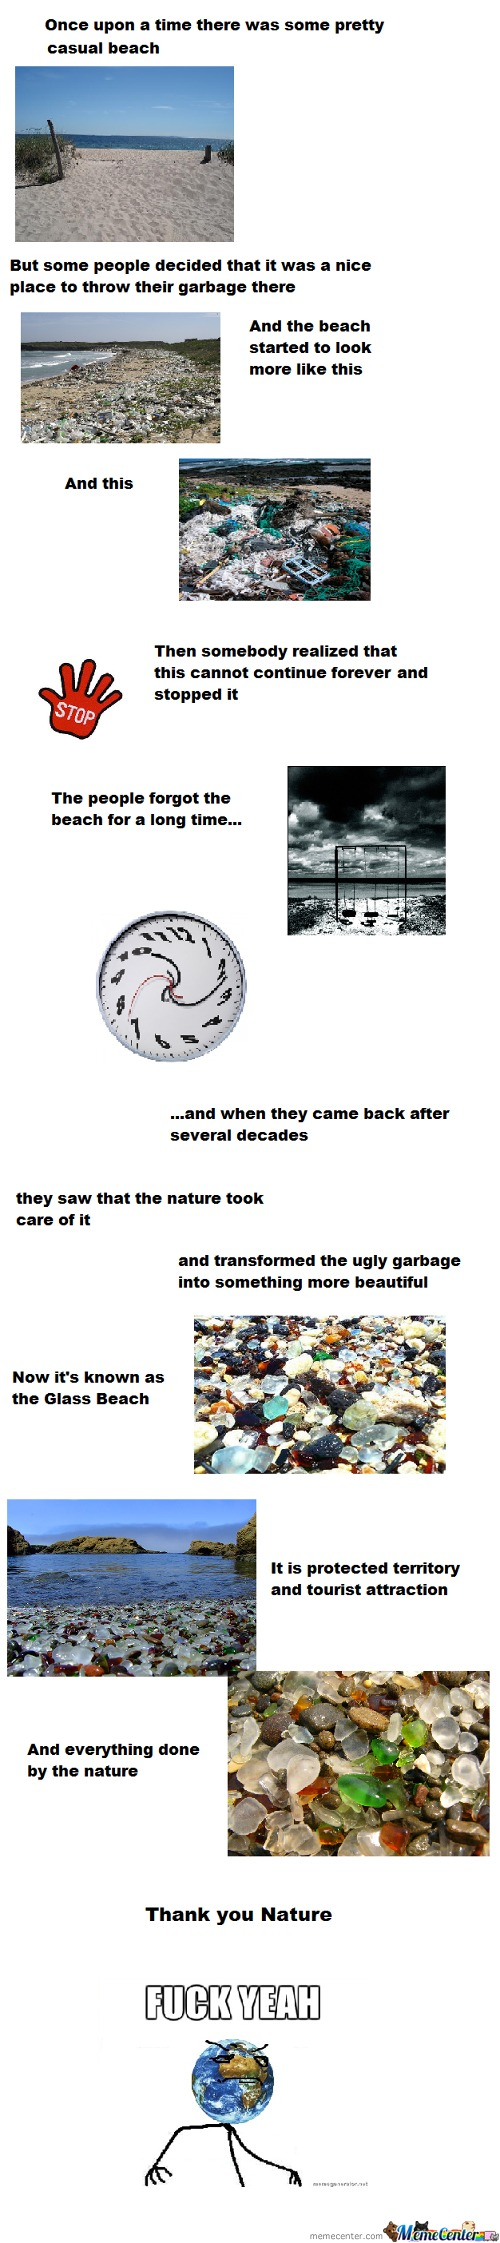 The Power Of Nature - True Story